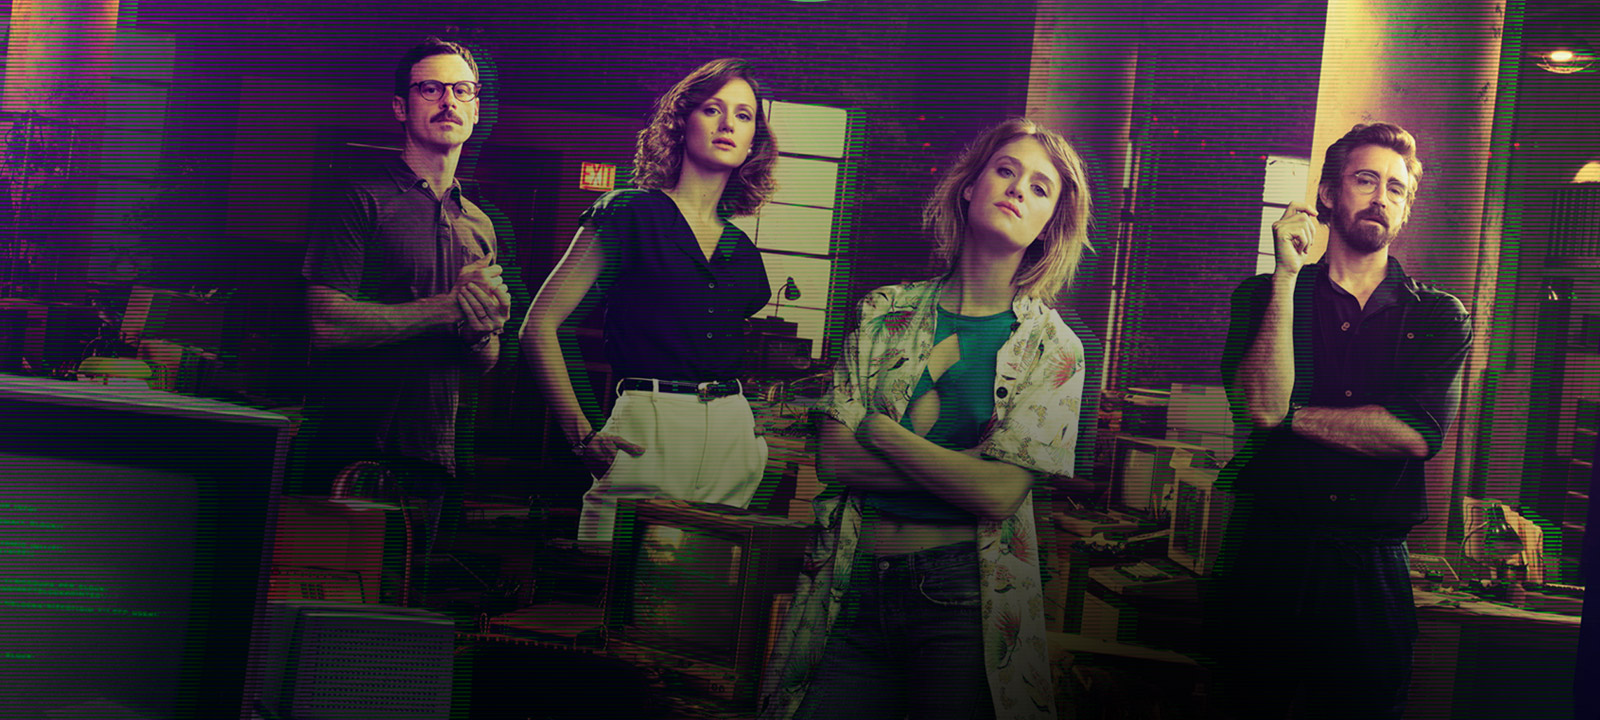 HALT-S3-Spotify-800×600-no-logo